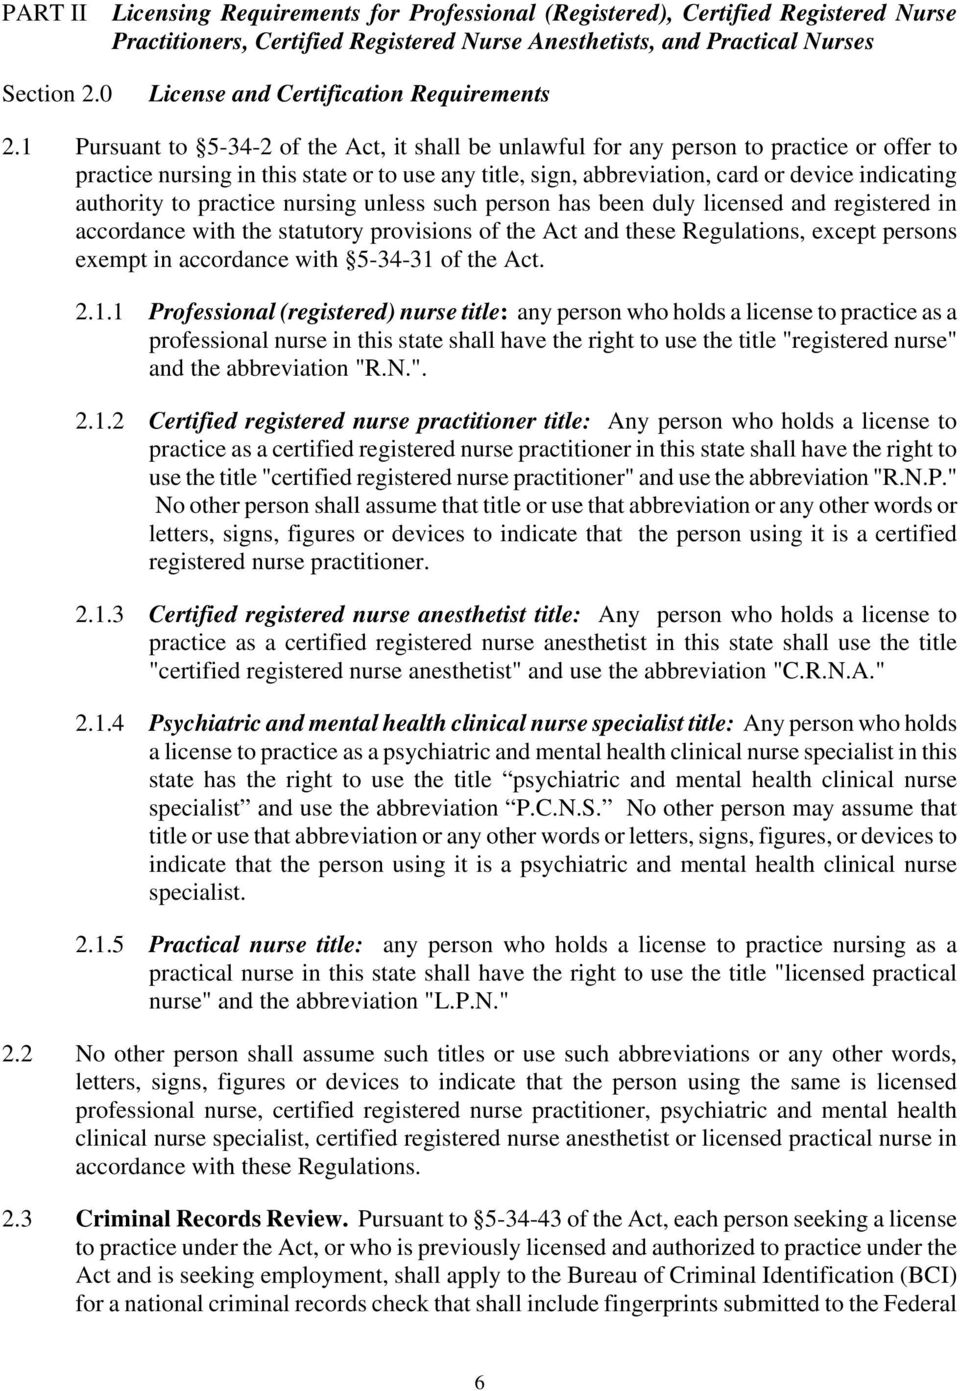 1 Pursuant to 5-34-2 of the Act, it shall be unlawful for any person to practice or offer to practice nursing in this state or to use any title, sign, abbreviation, card or device indicating